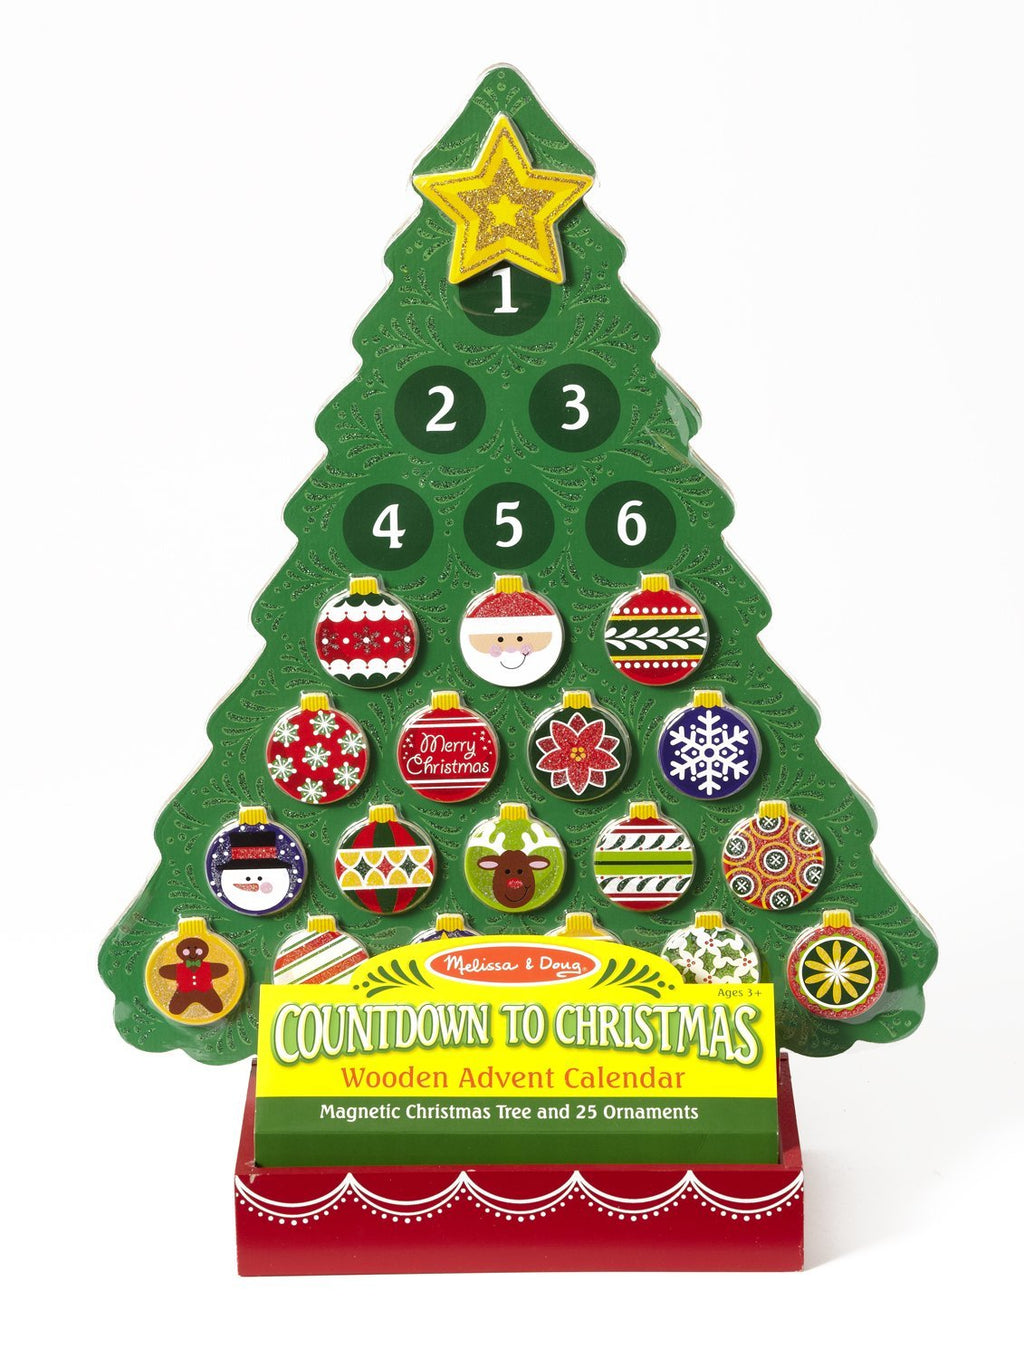 Melissa & Doug - Countdown To Christmas Wooden Advent Calendar